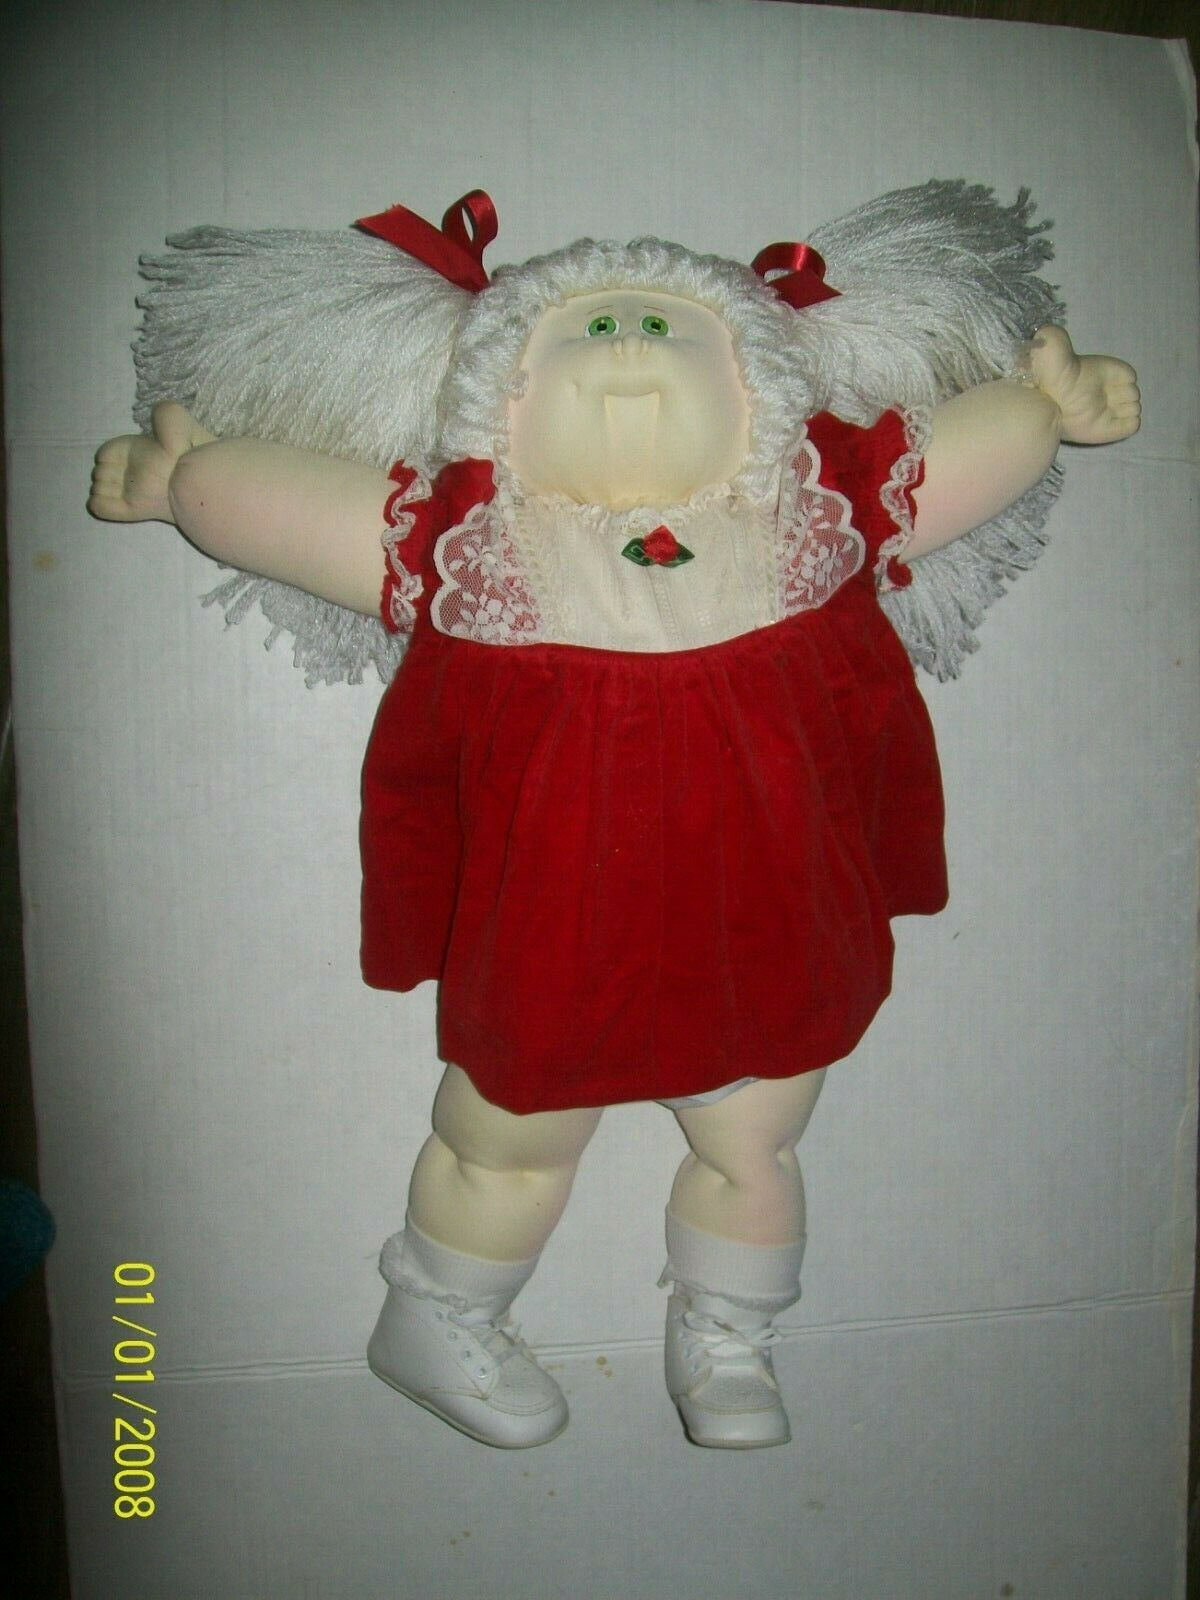 CABBAGE PATCH SOFT SCULPTURE 80 XMAS ED  GIRL   HANDSIGNED ONLY